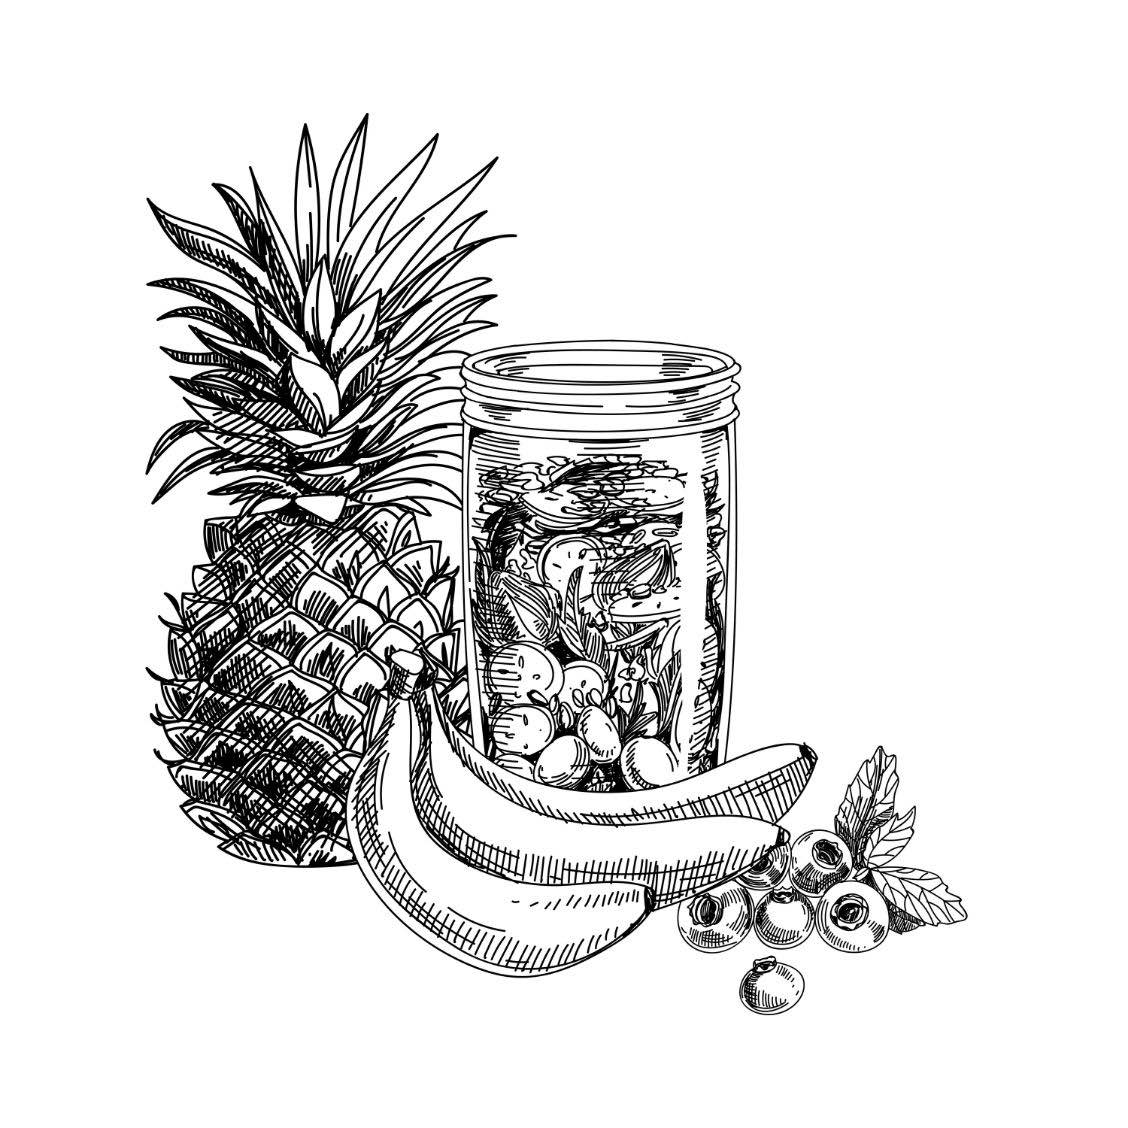 Jar with ingredients and bananas illustration